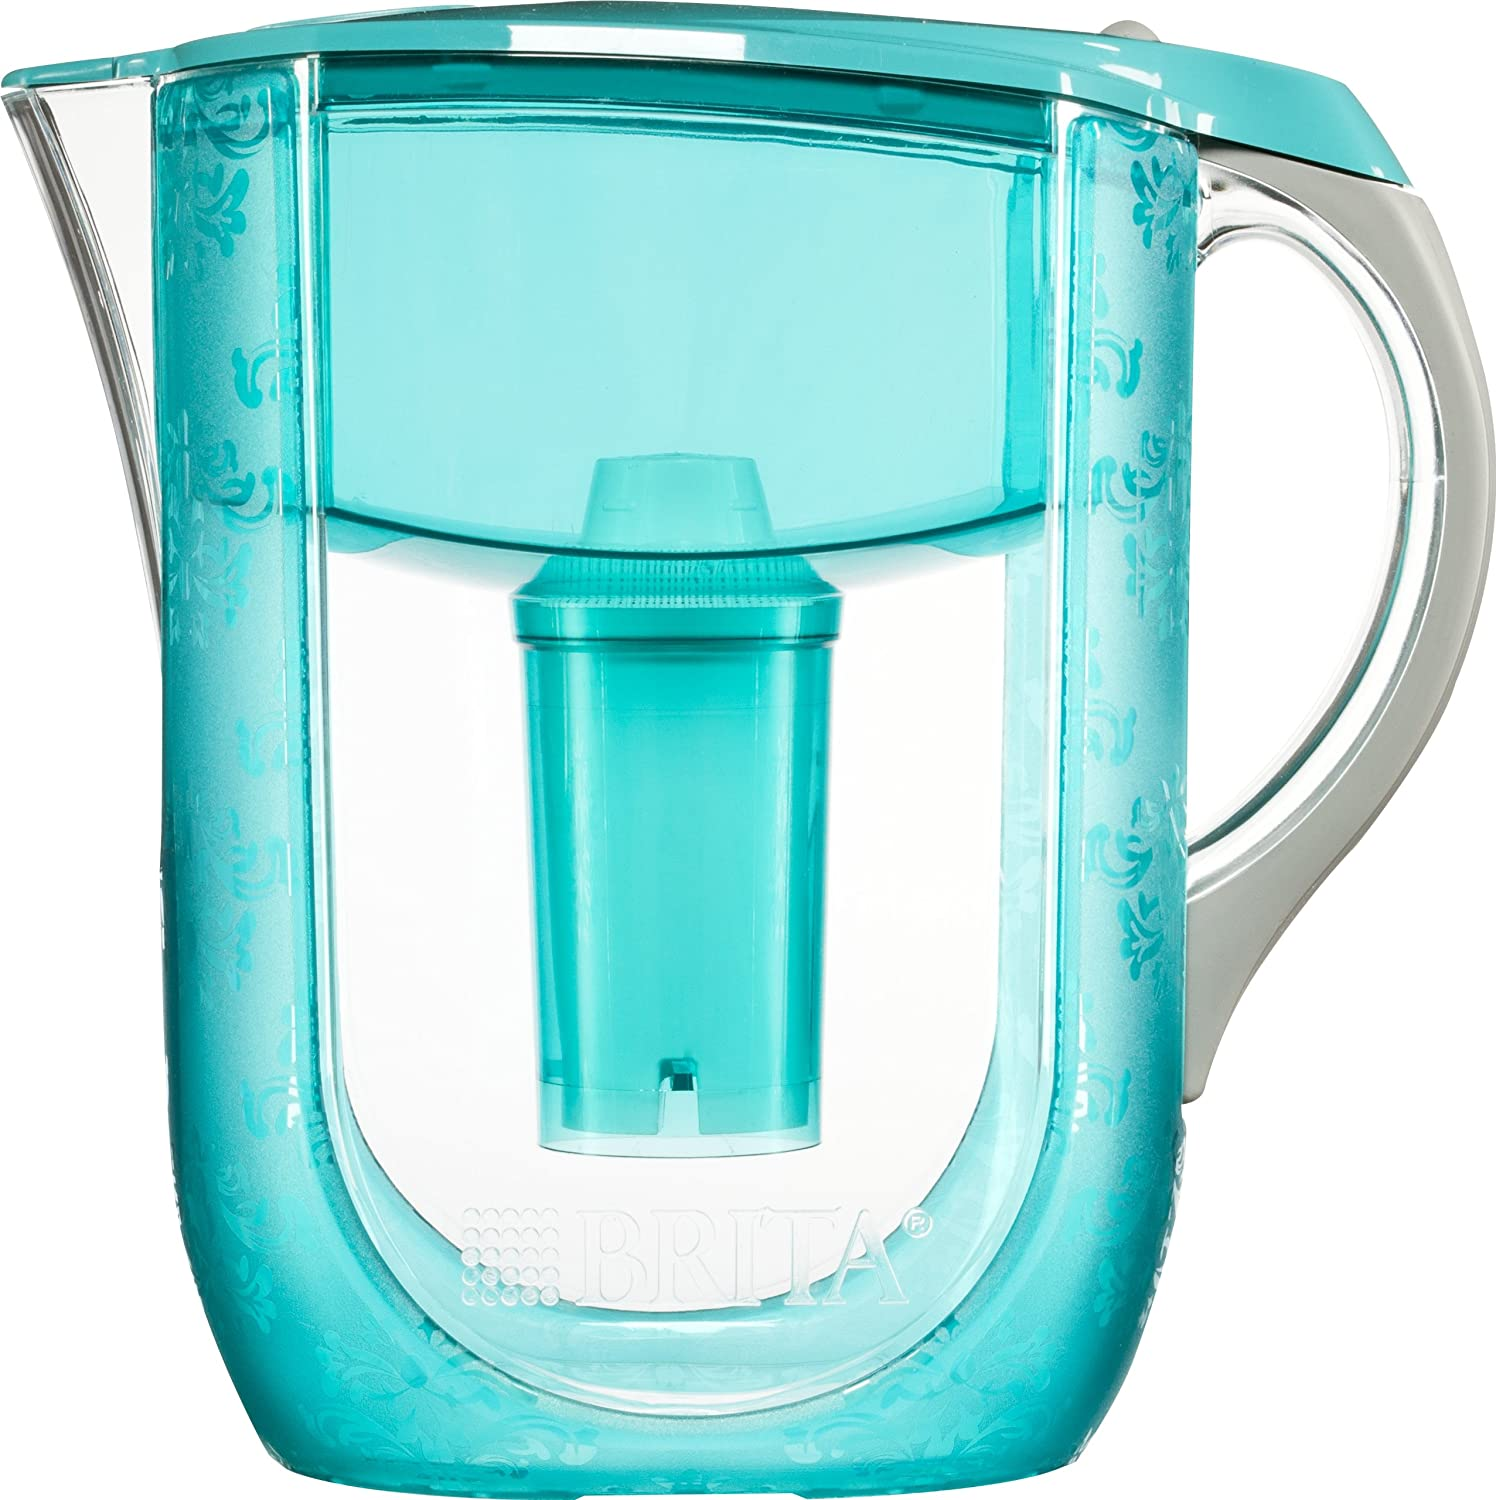 Amazon.com: Brita Grand Water Filter Pitcher, Turquoise Versailles, 10 Cup   Discontinued By Manufacturer: Kitchen U0026 Dining